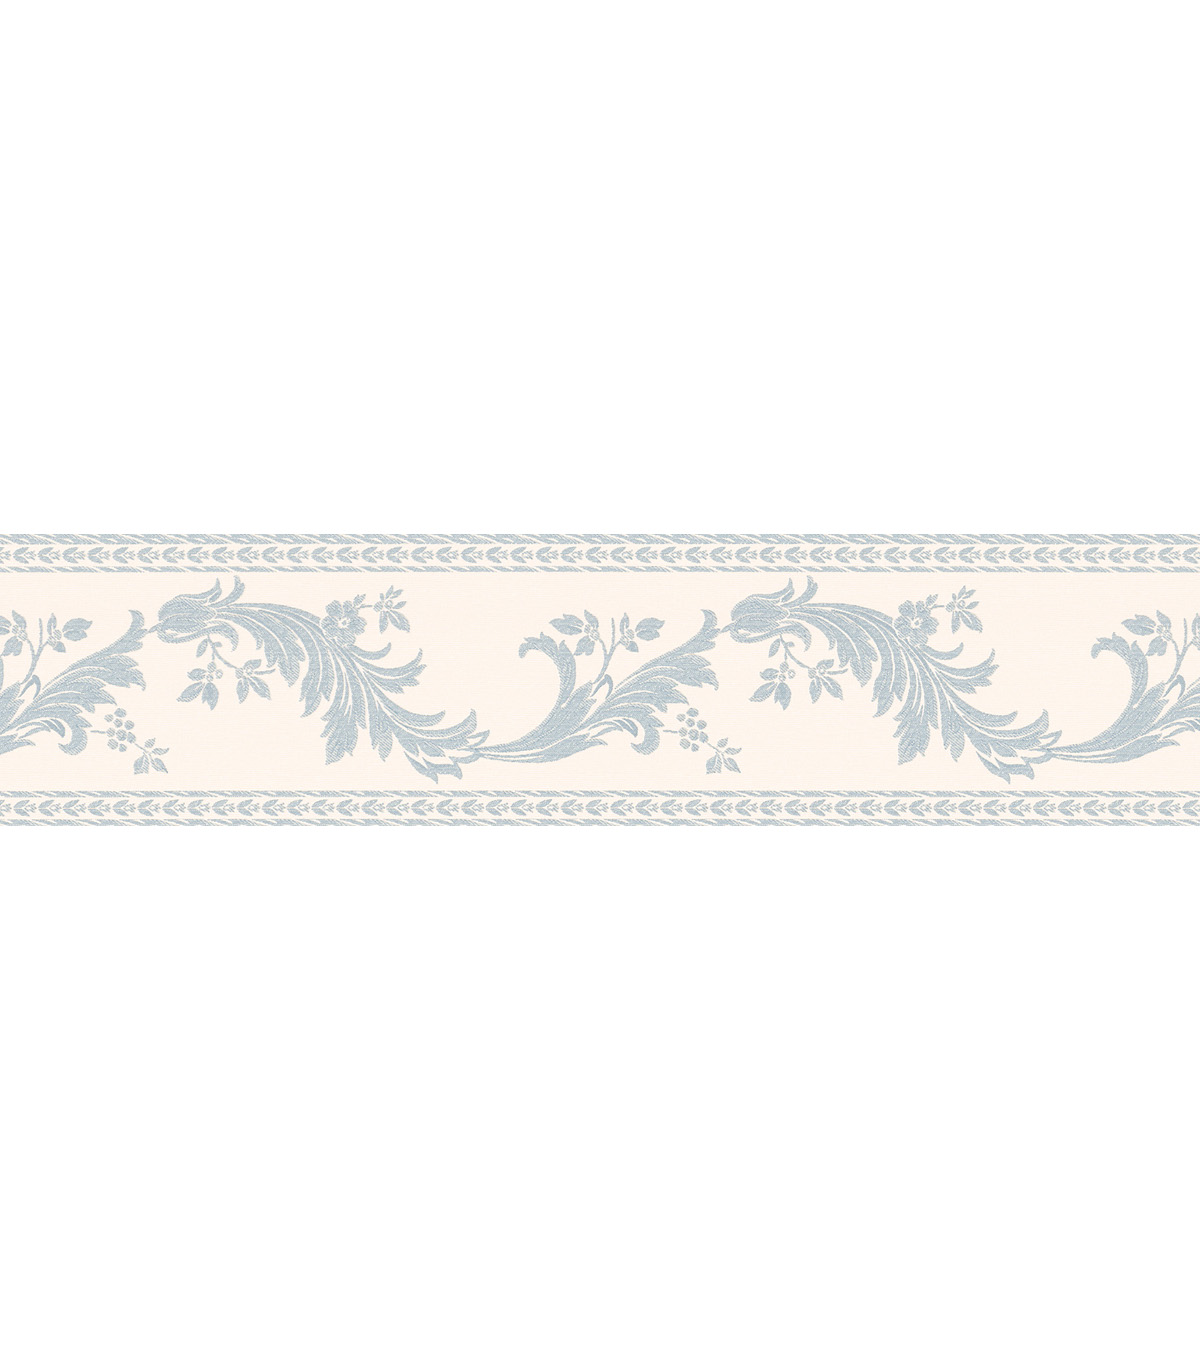 Scroll Silhouette Wallpaper Border, Blue Sample